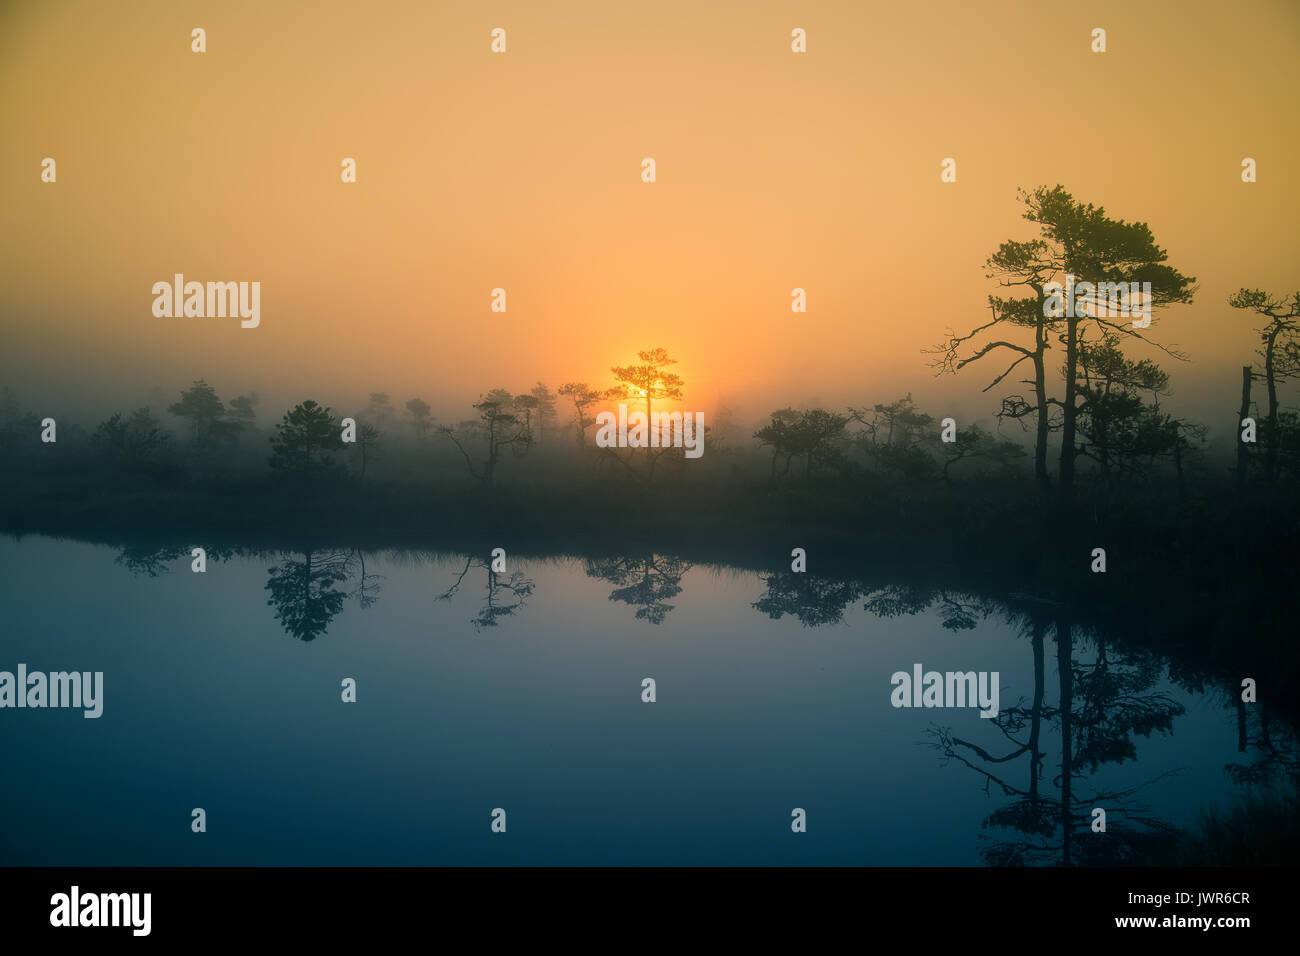 a beautiful, dreamy morning scenery of sun rising in a misty swamp